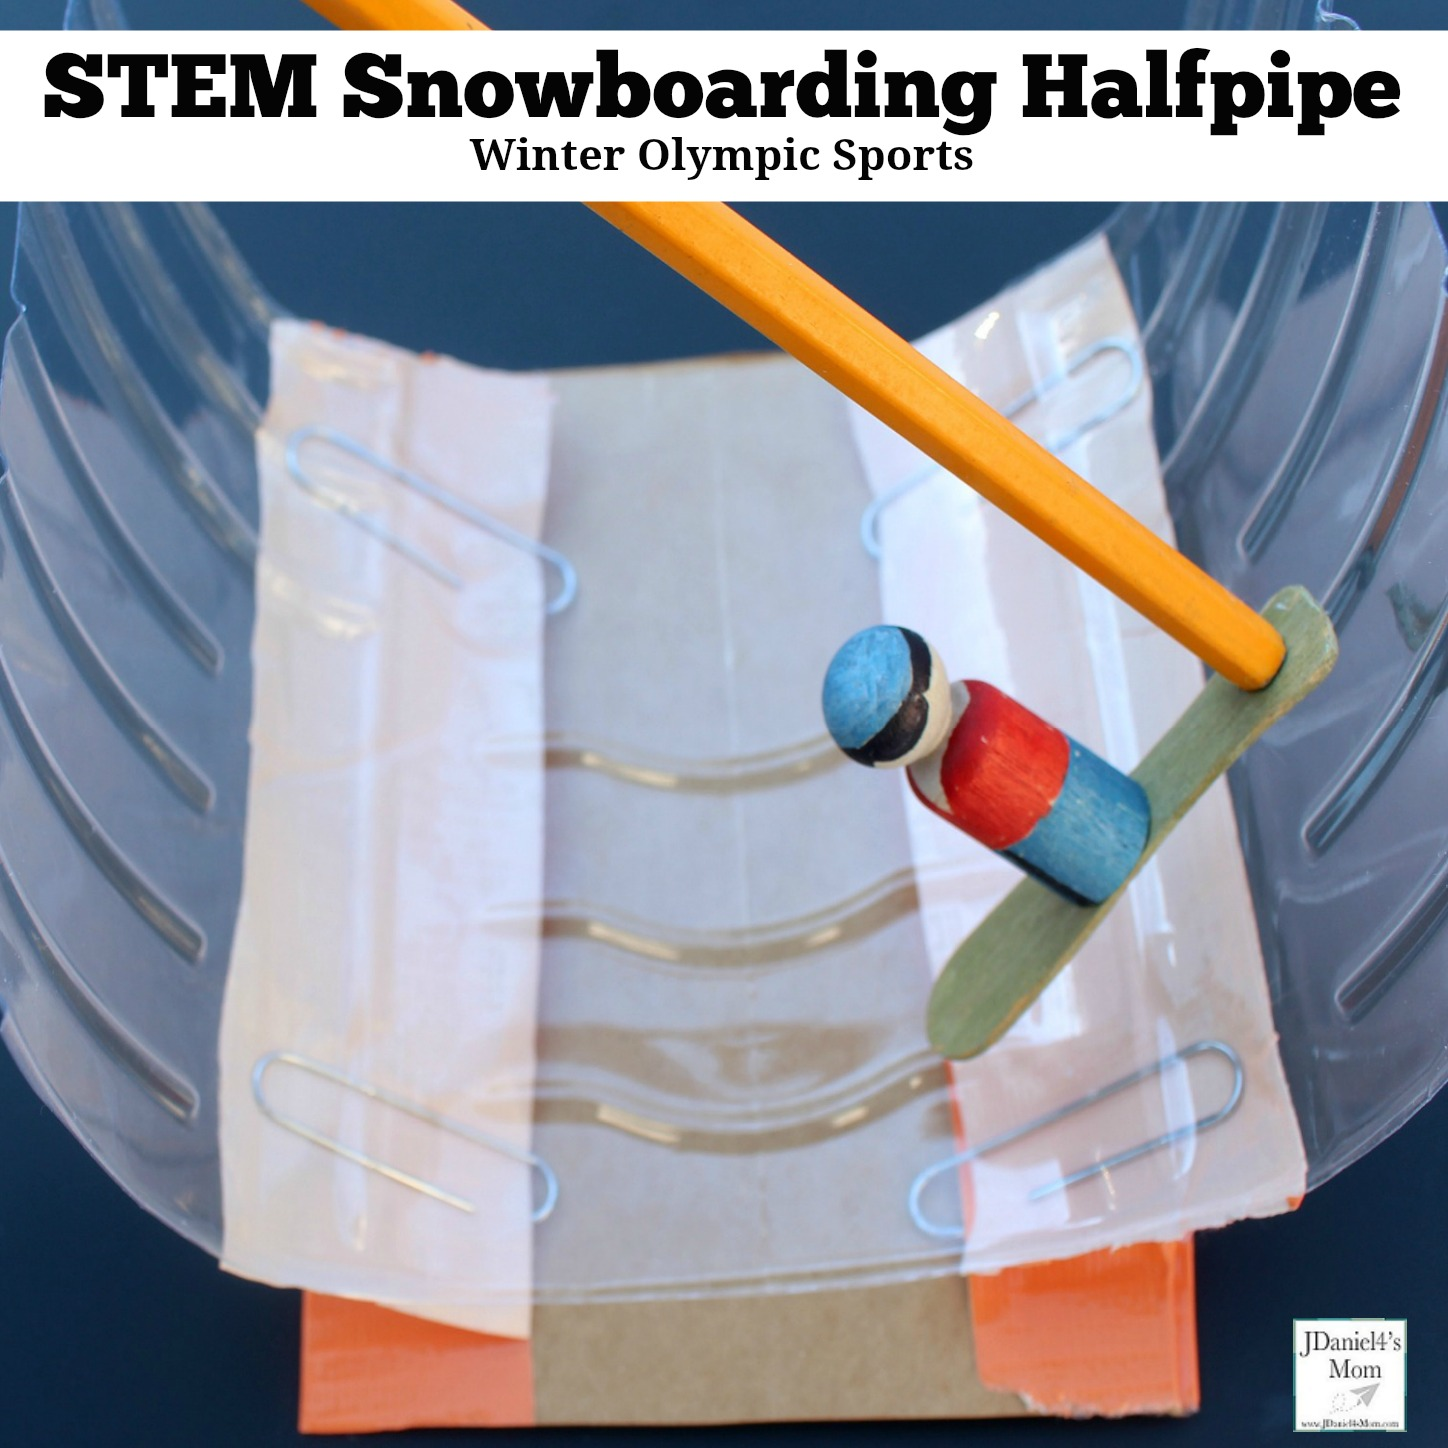 Winter Olympic Sports - STEM Snowboarding Halfpipe : This is a fun STEM activity that can be used for creative play.